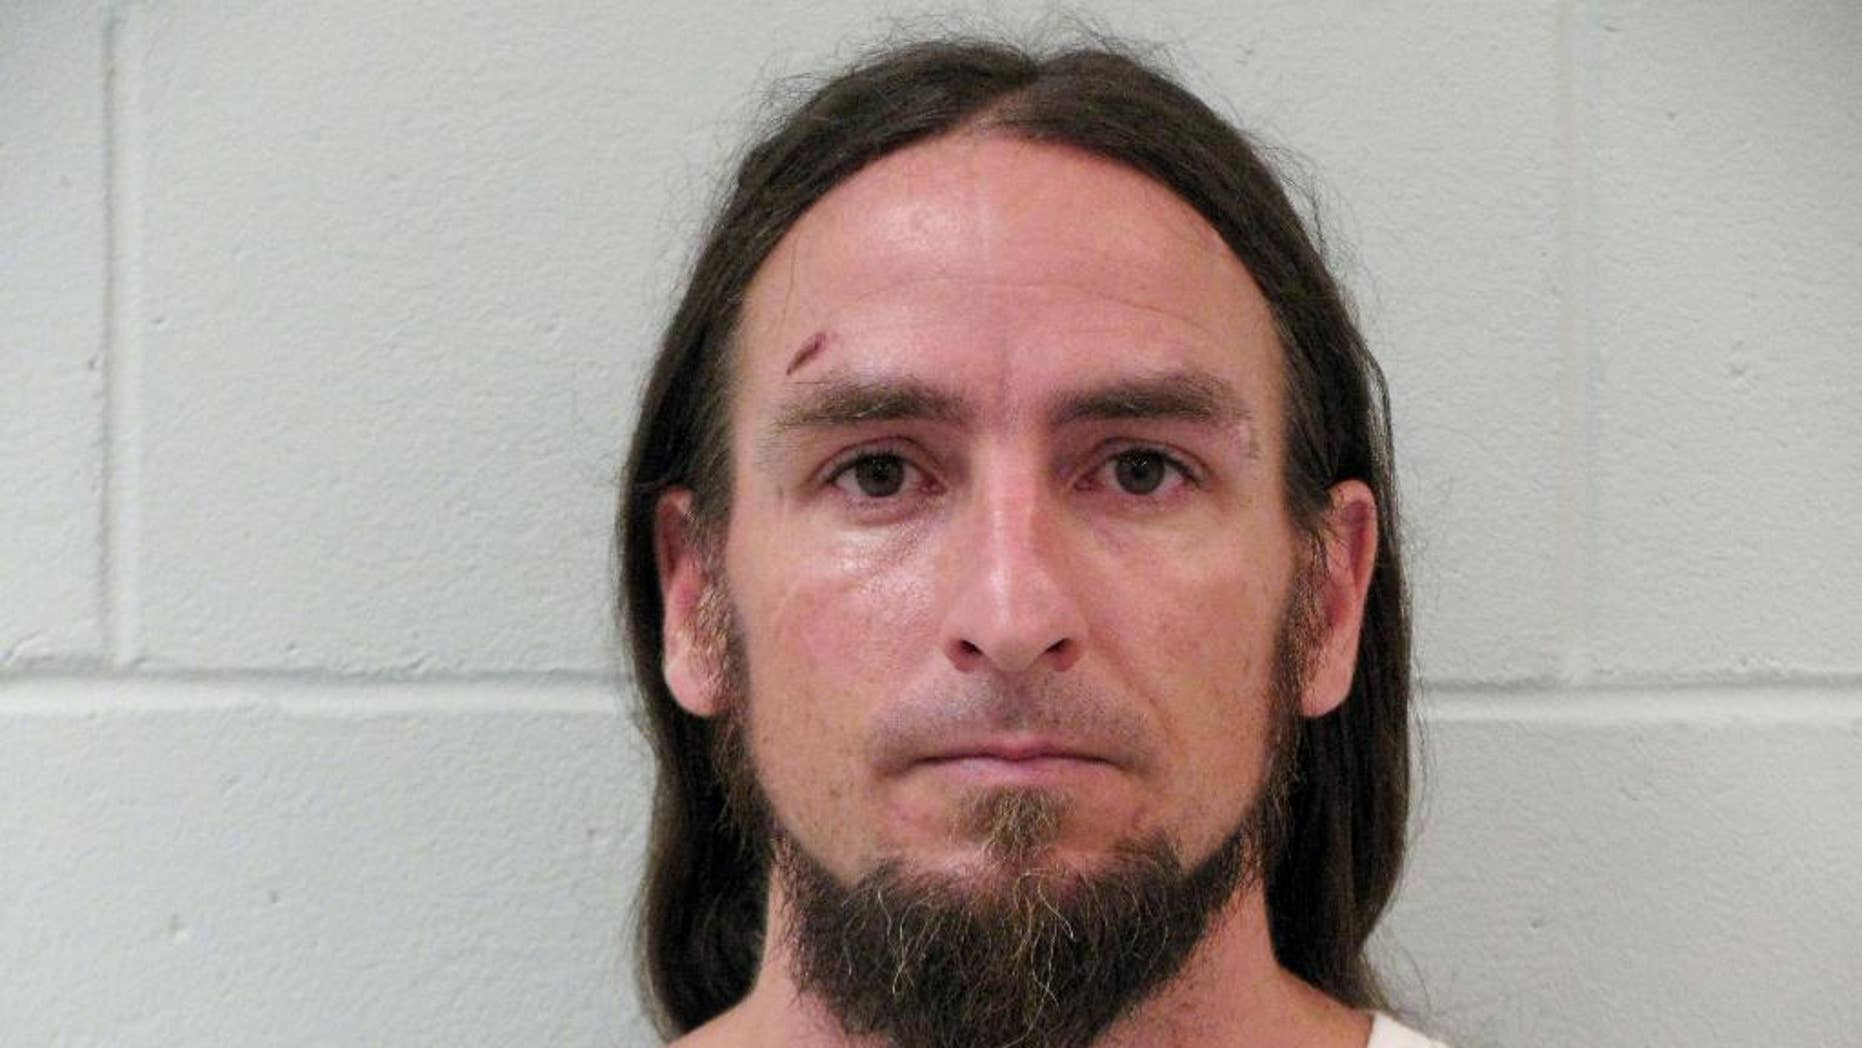 """Huckleberry Finn is shown in a photo provided by the Keene, N.H. Police Department. Keene police say a man named Huckleberry Finn followed a woman into her home on July 25 and sexually assaulted her. Keene police stressed that the 36-year-old man's real name is the same as the fictional protagonist in Mark Twain's """"Adventures of Huckleberry Finn.""""  He was arrested Wednesday, July 29, and was being held on $25,000 bail. (Keene, N.H. Police Department via AP)"""